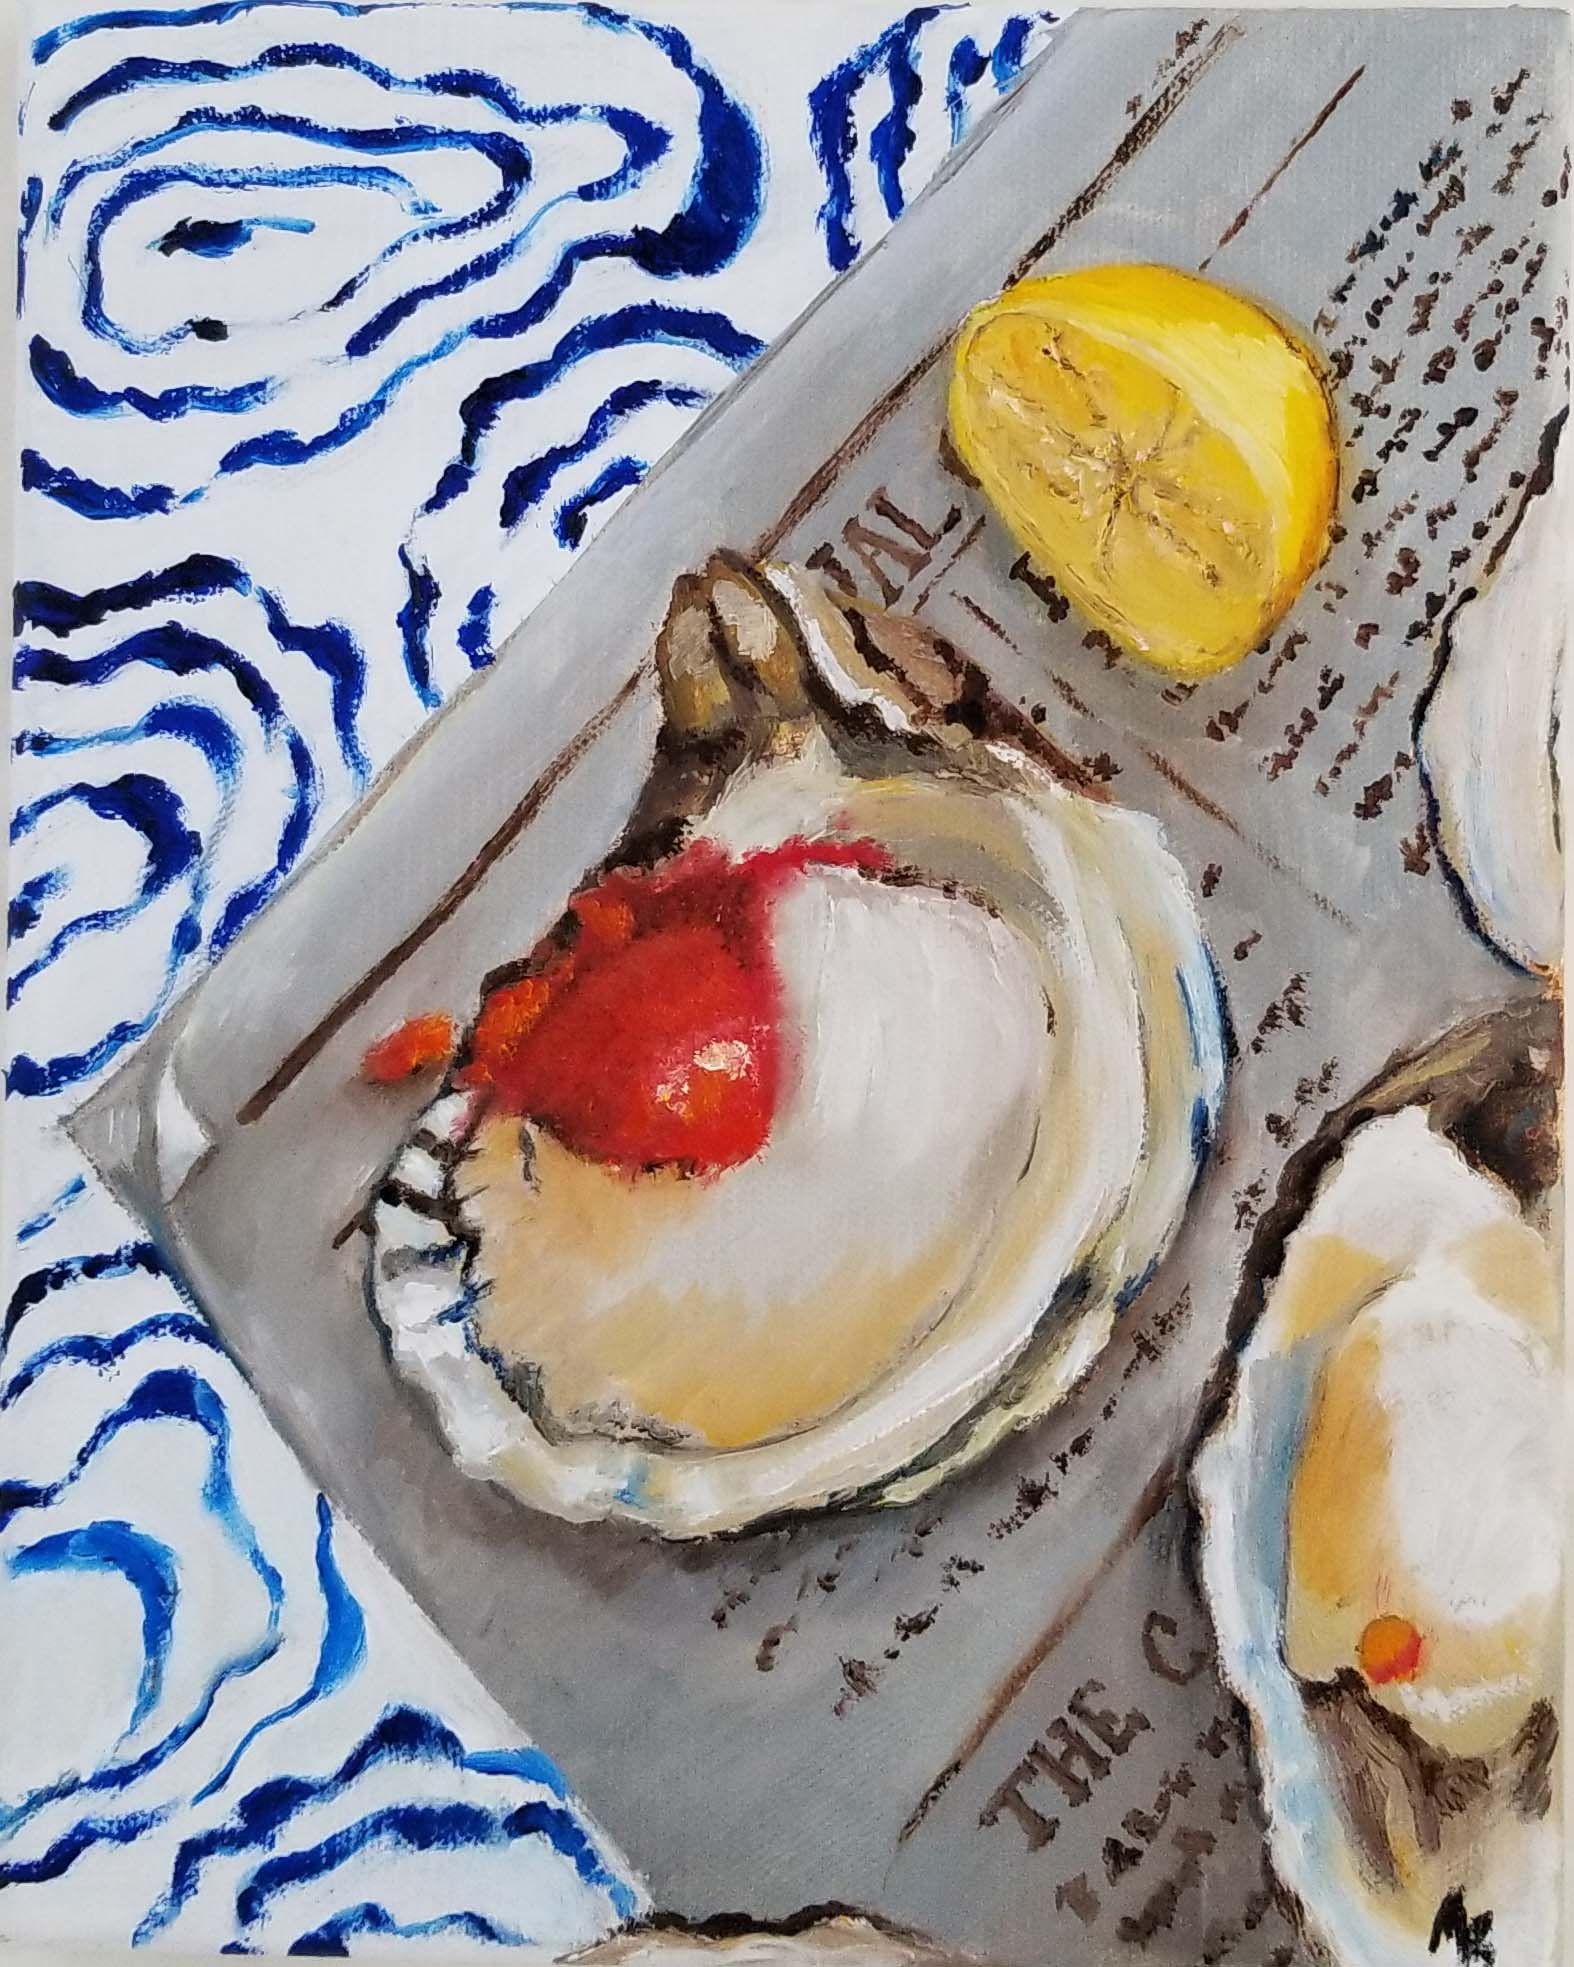 Oysters on Oyster Paisley